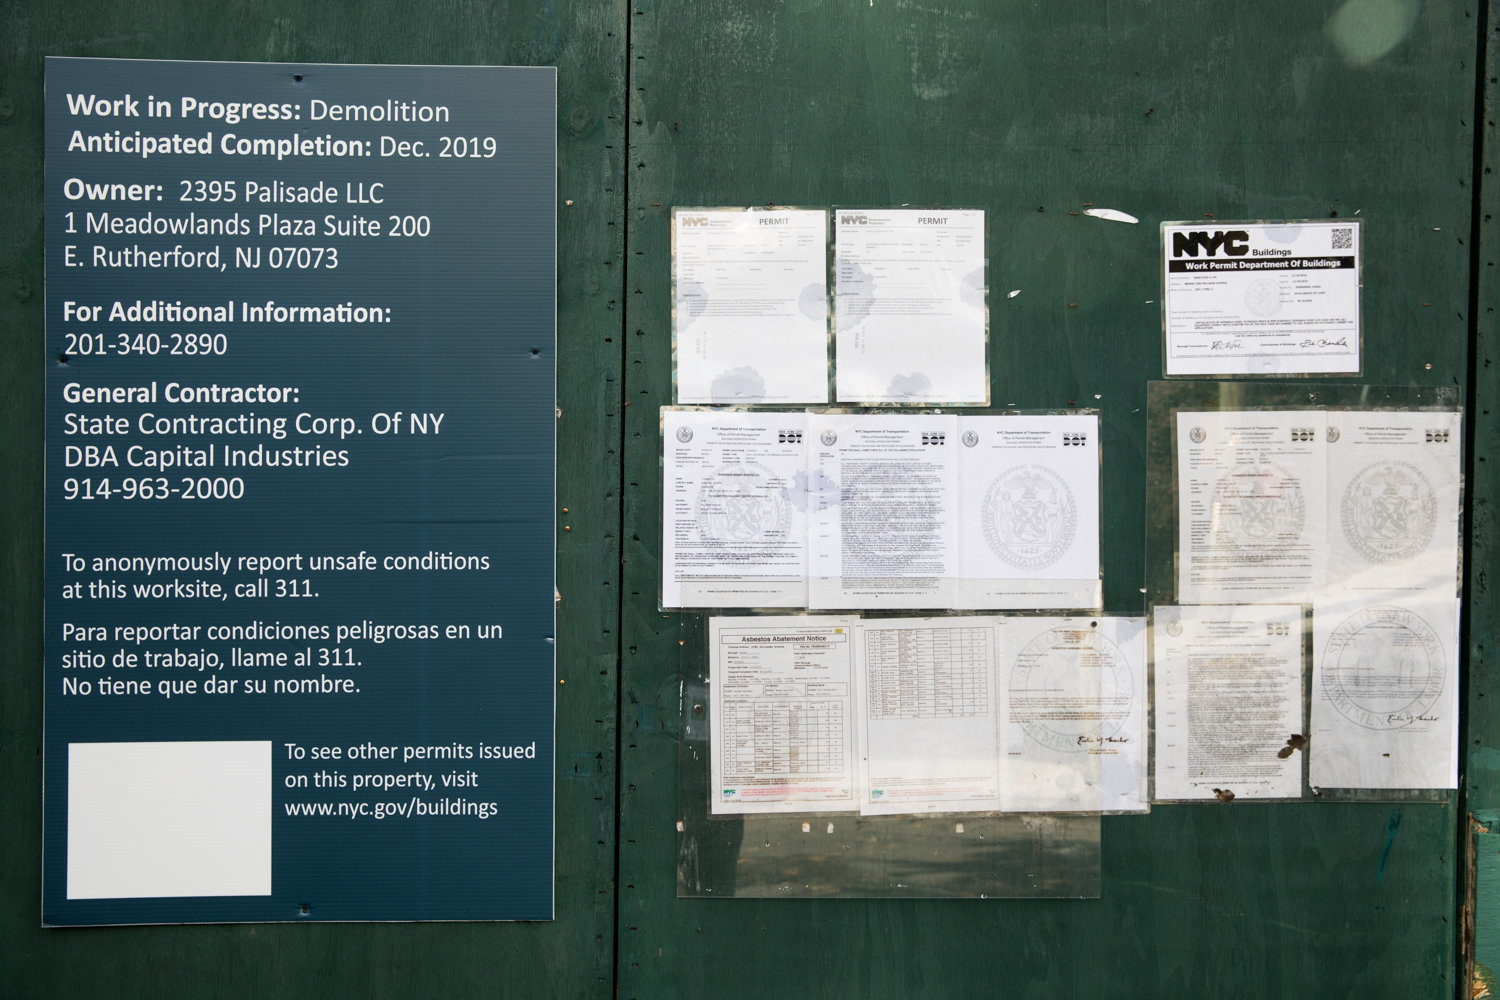 A series of work orders are pasted on a construction barrier surround the Villa Rosa Bonheur on Palisade Avenue, which has finally been authorized for demolition, despite community efforts to save the historic building.